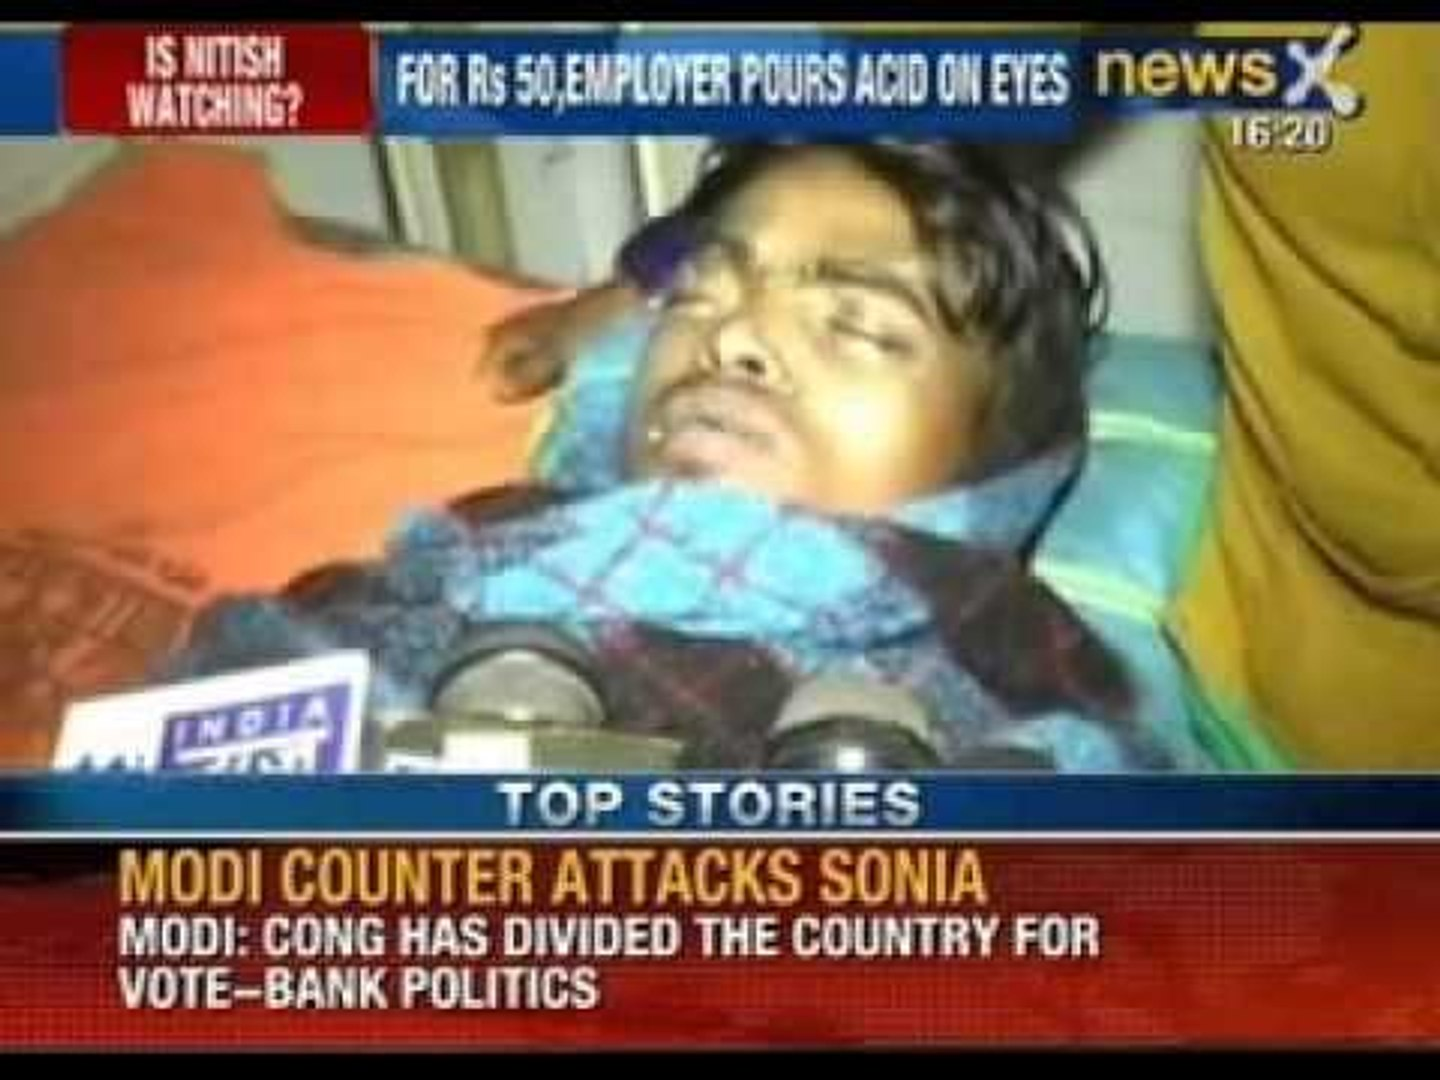 News X: Watch barbarism return in Delhi on daily wager. Acid poured in eyes for asking wage.